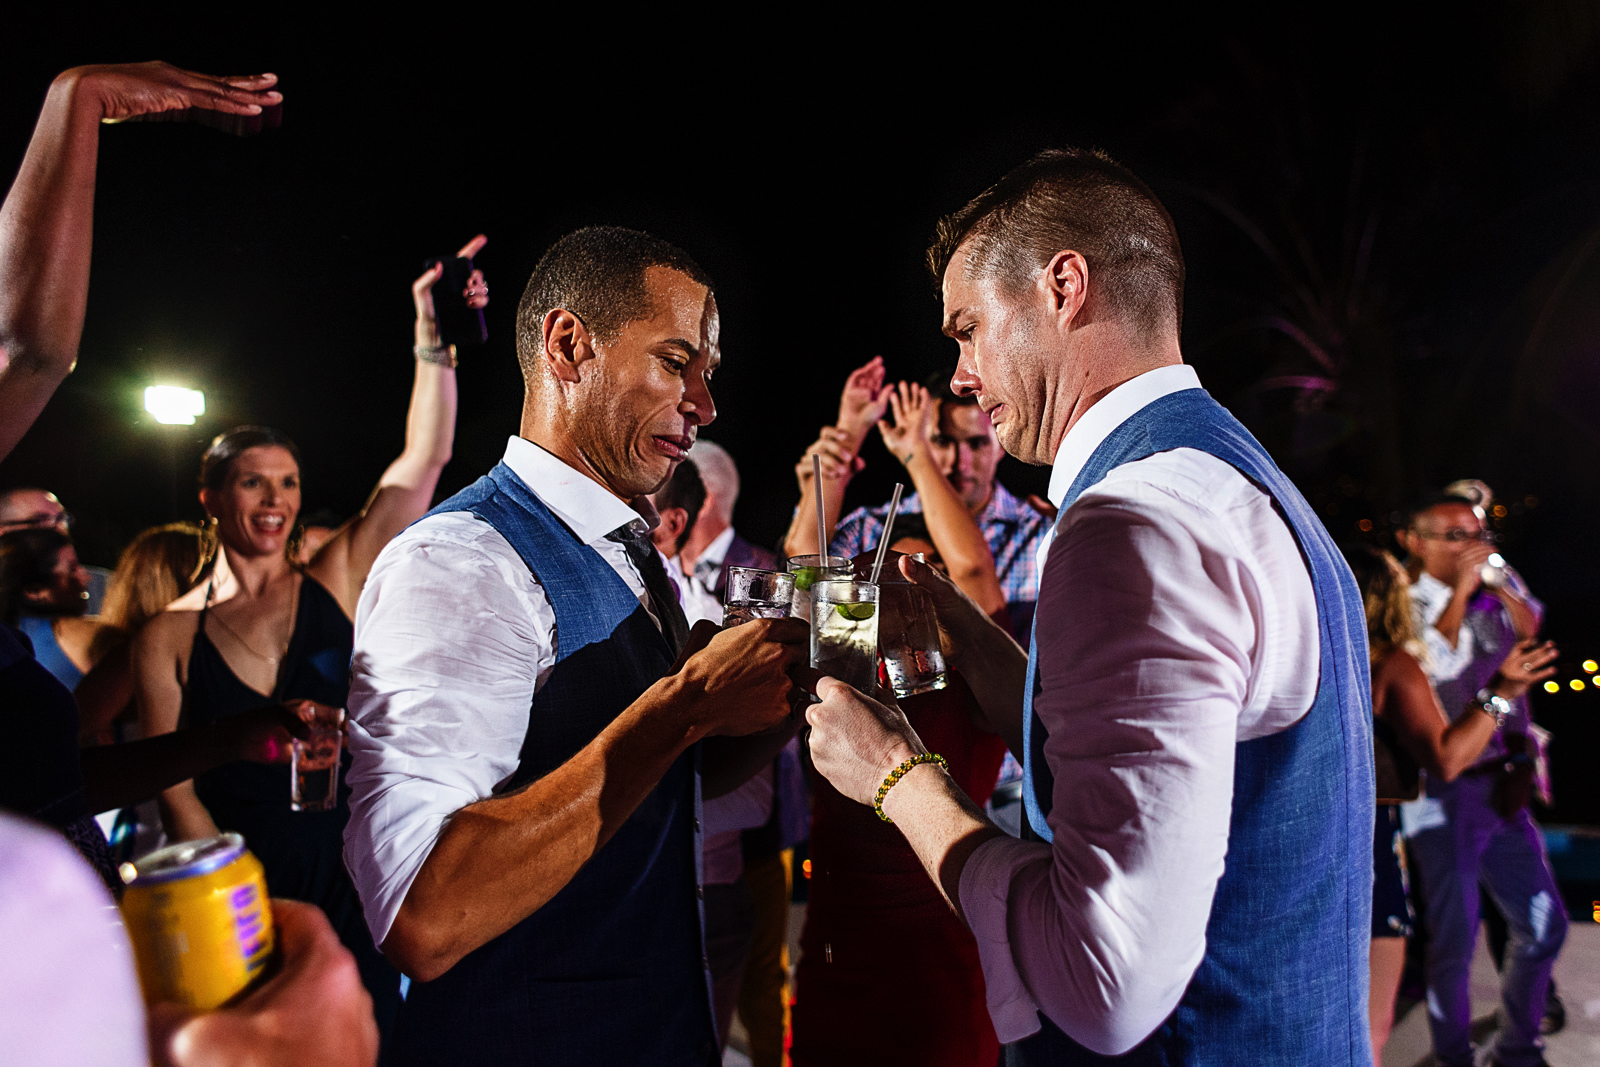 Grooms make funny faces as they put their drinks together in the dancefloor